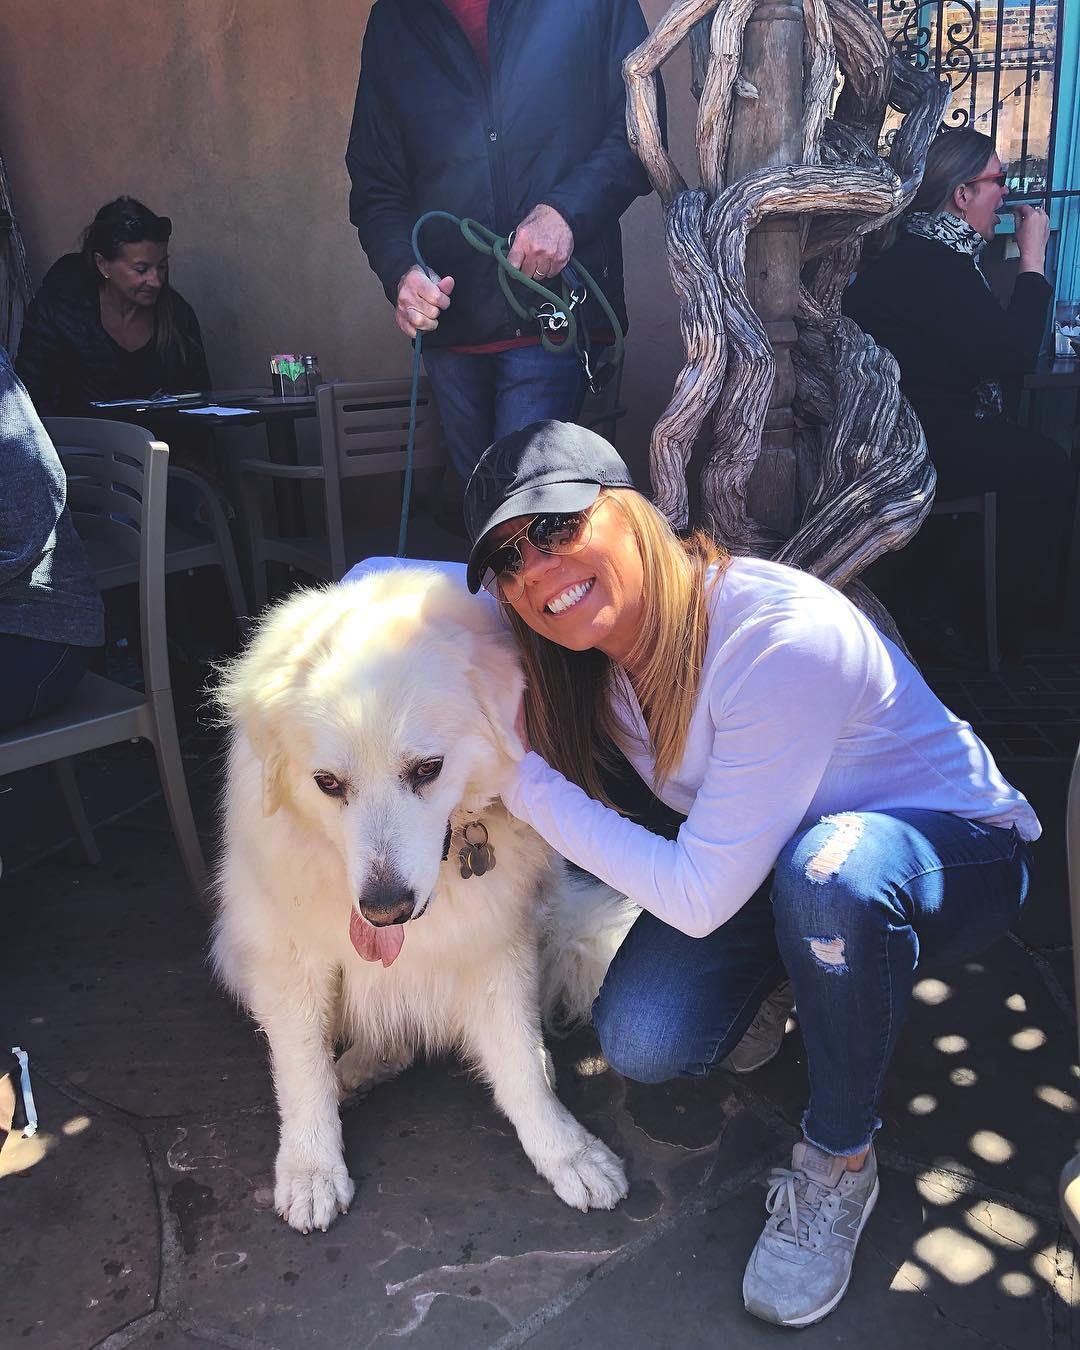 Enjoy New Mexican cuisine with your dog on The Shed's pet-friendly patio.